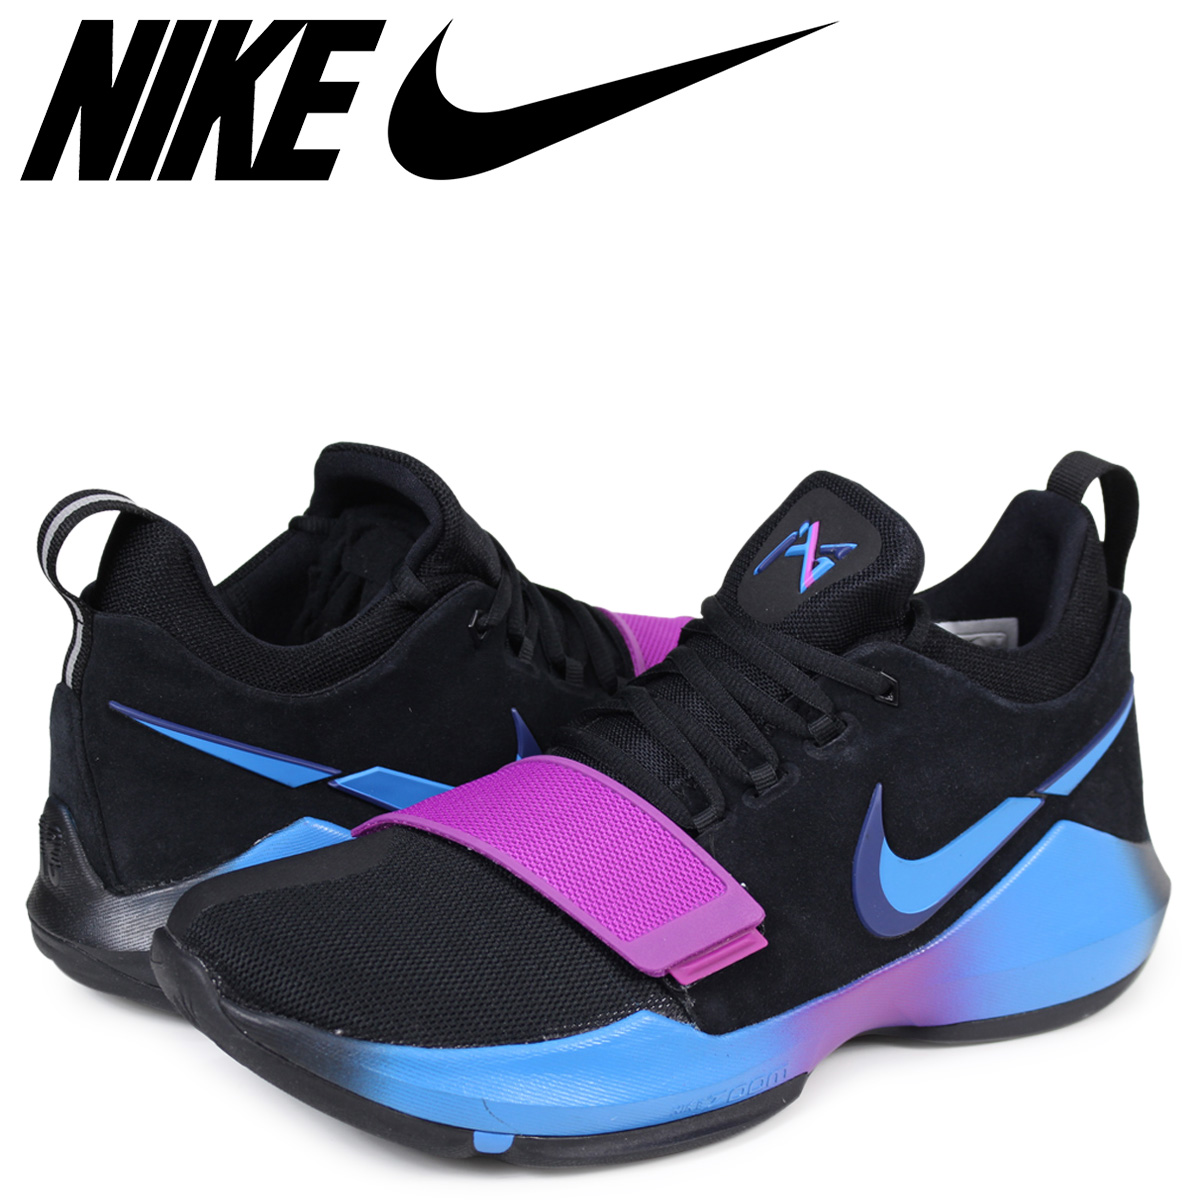 sports shoes 4d5f0 7e44d NIKE PG 1 FLIP THE SWITCH Nike PG1 sneakers men black 878,627-003 [183]